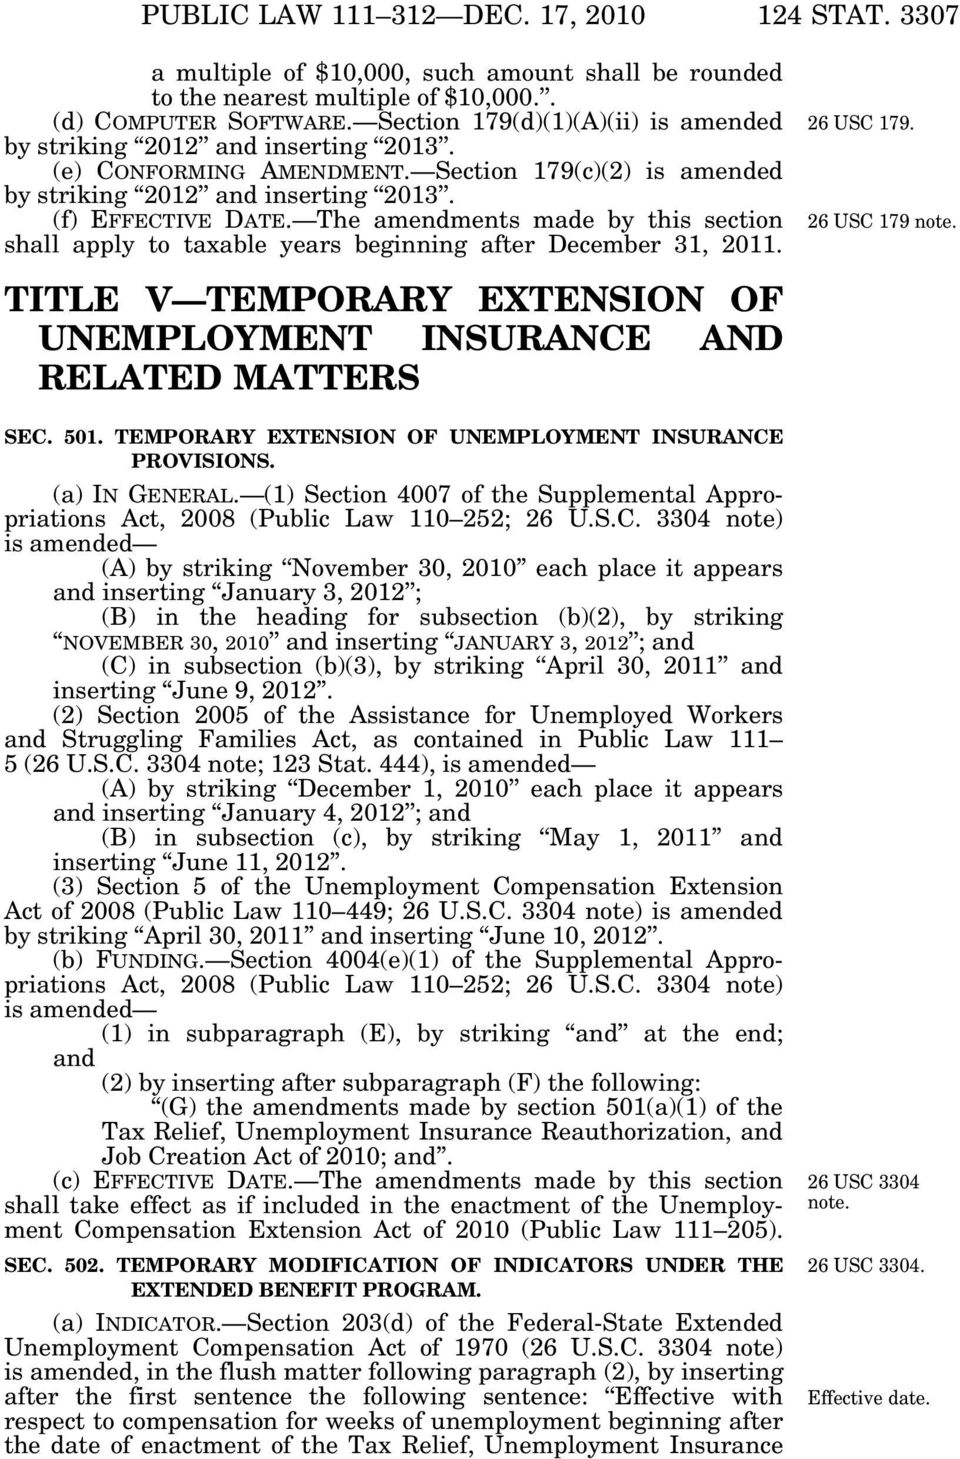 The amendments made by this section shall apply to taxable years beginning after December 31, 2011. TITLE V TEMPORARY EXTENSION OF UNEMPLOYMENT INSURANCE AND RELATED MATTERS 26 USC 179.